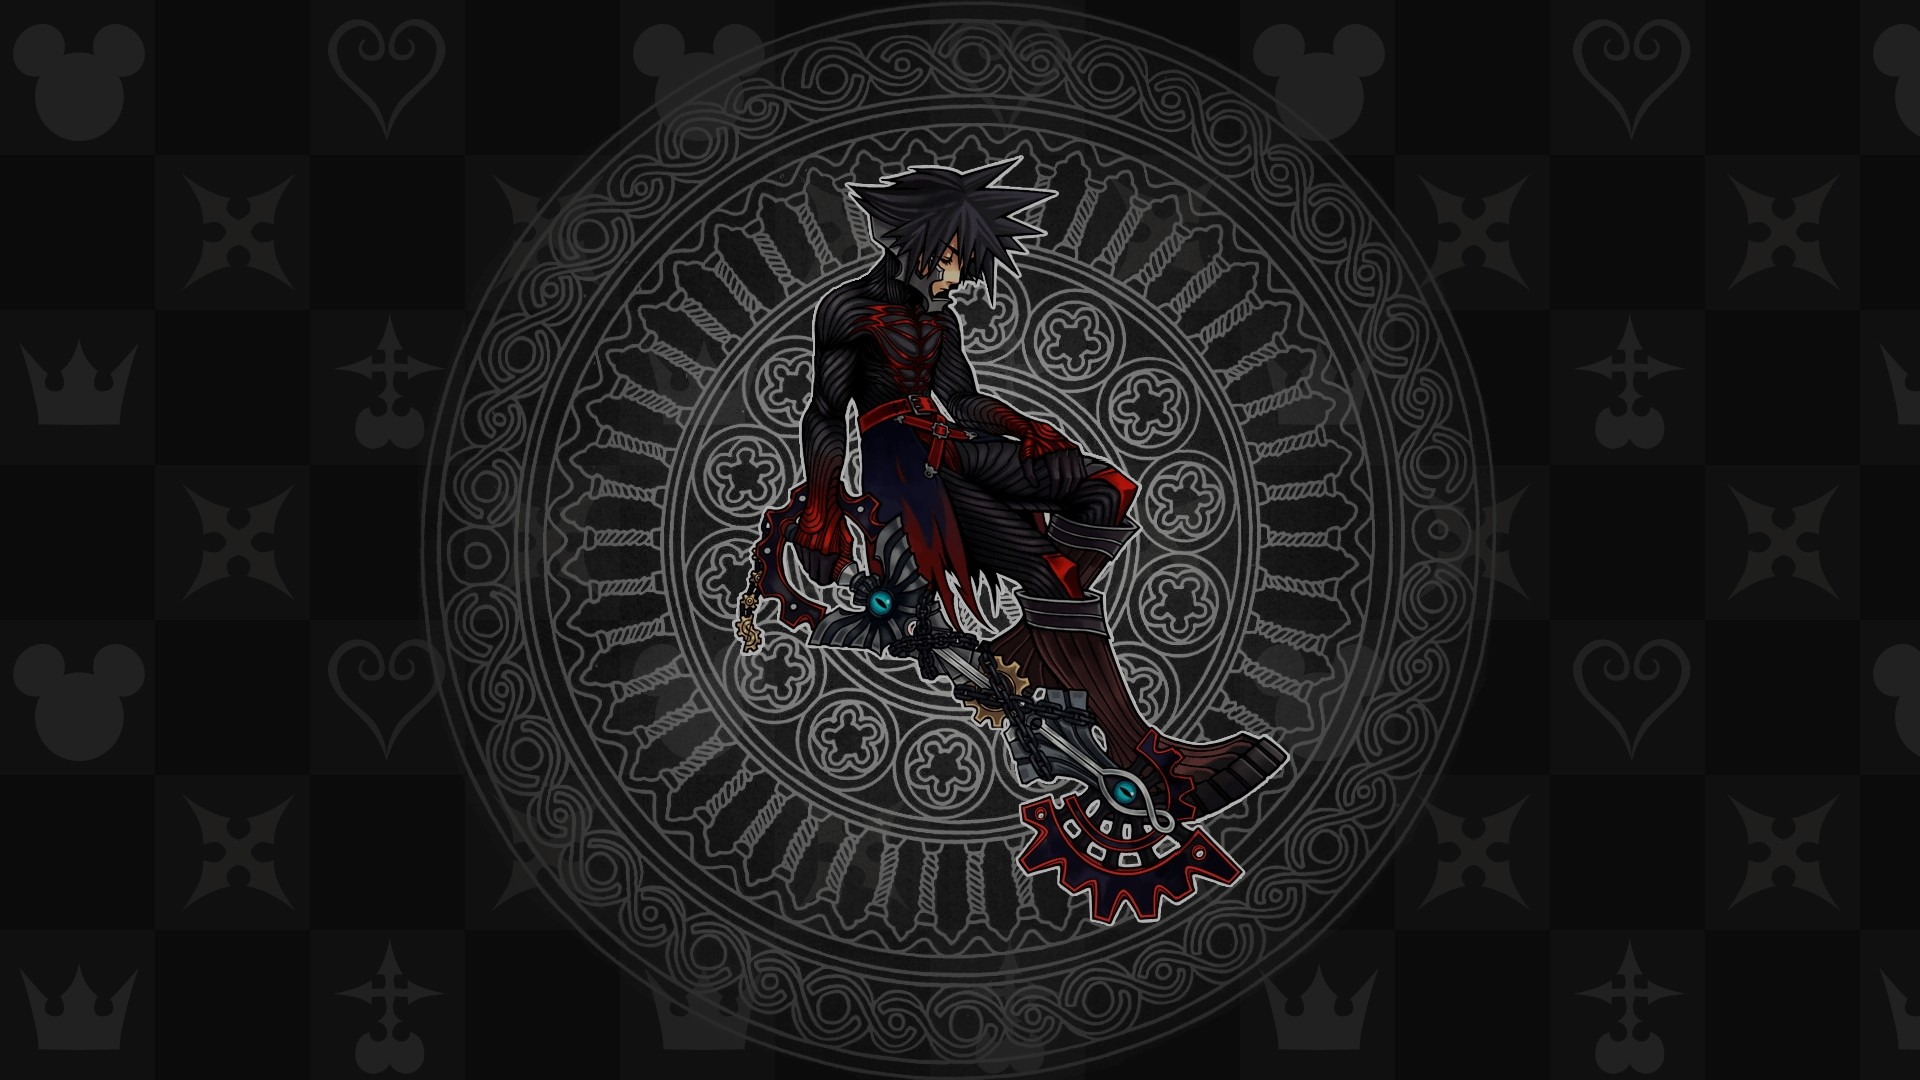 Res: 1920x1080, Kingdom Hearts HD Wallpaper | Hintergrund |  | ID:293854 -  Wallpaper Abyss